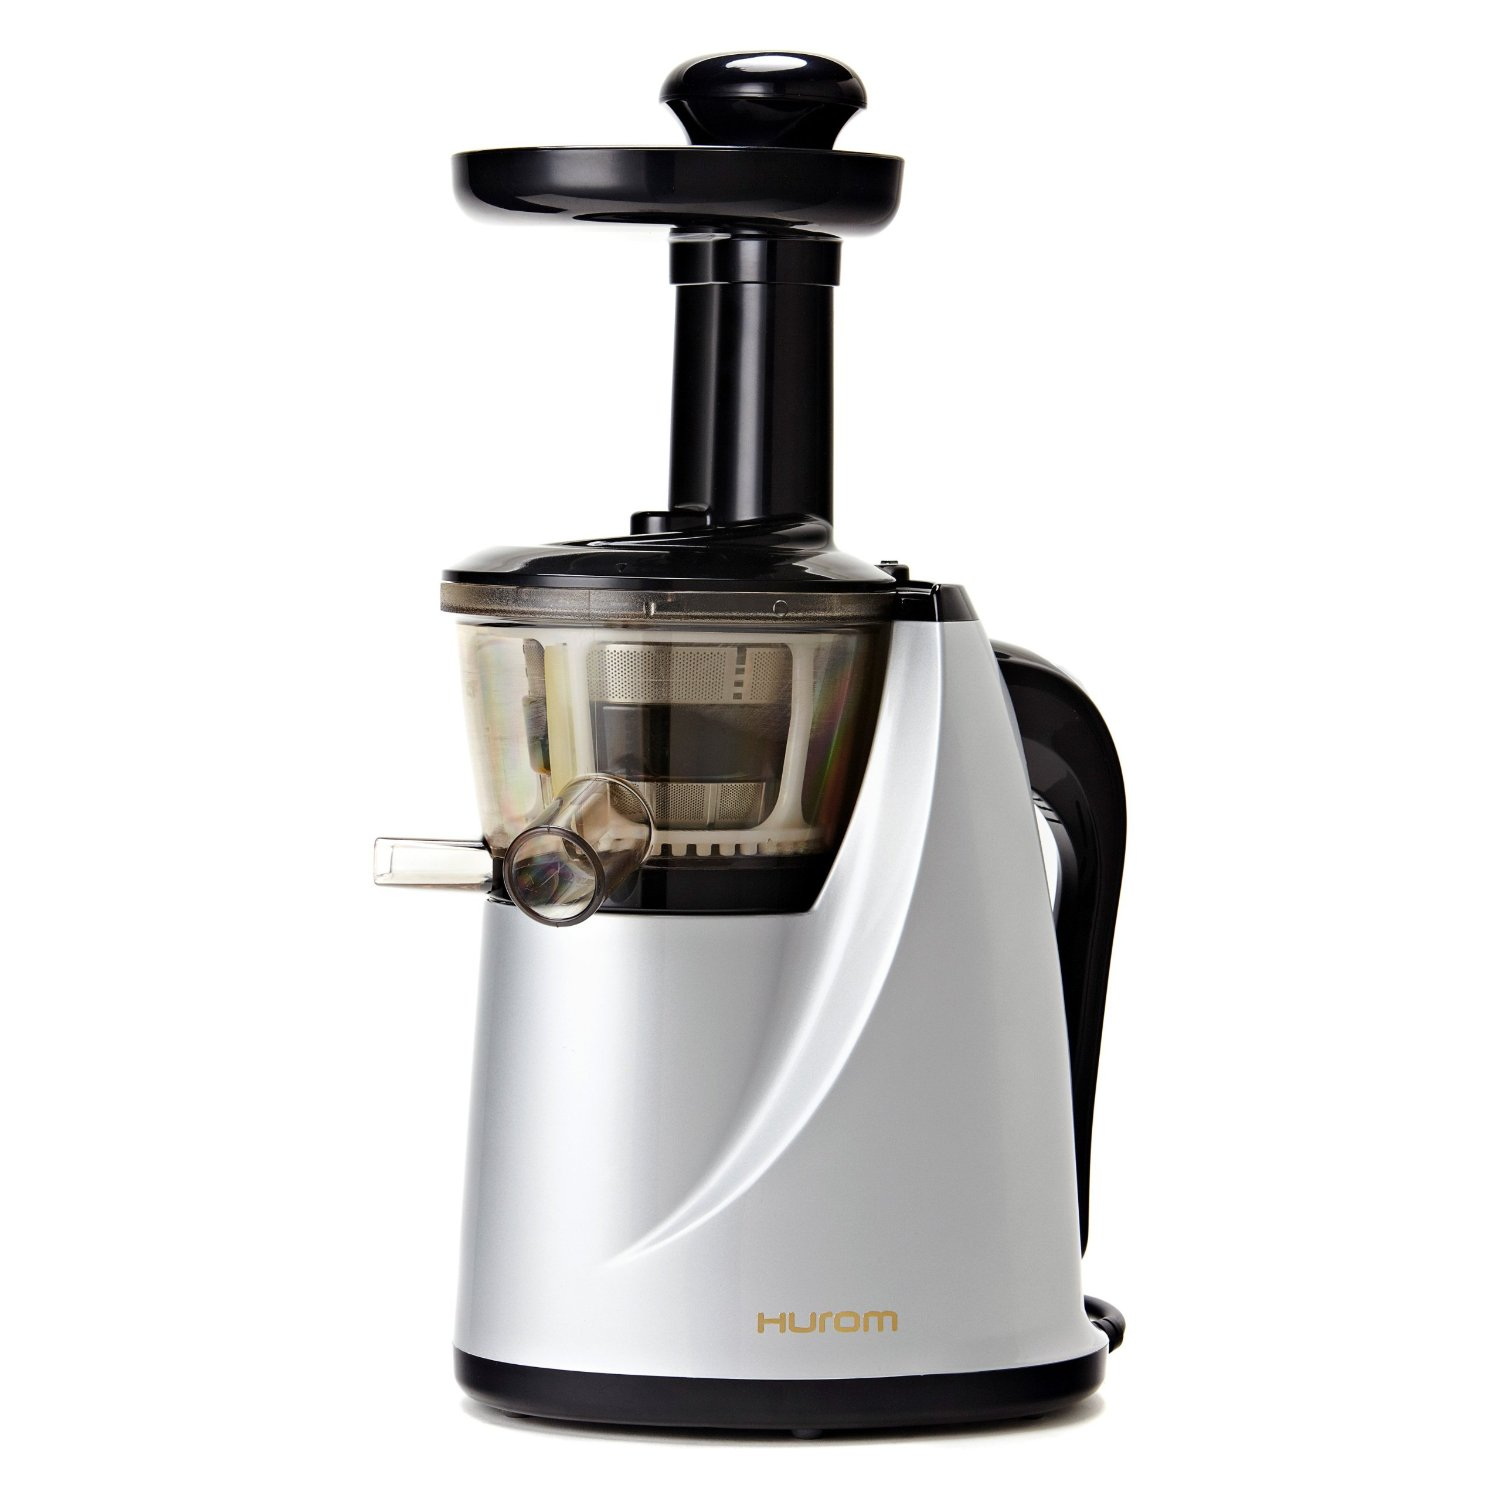 Hurom Slow Juicer Review : Hurom HU-100 Masticating Slow Juicer Review - Best Cold Press Juicers